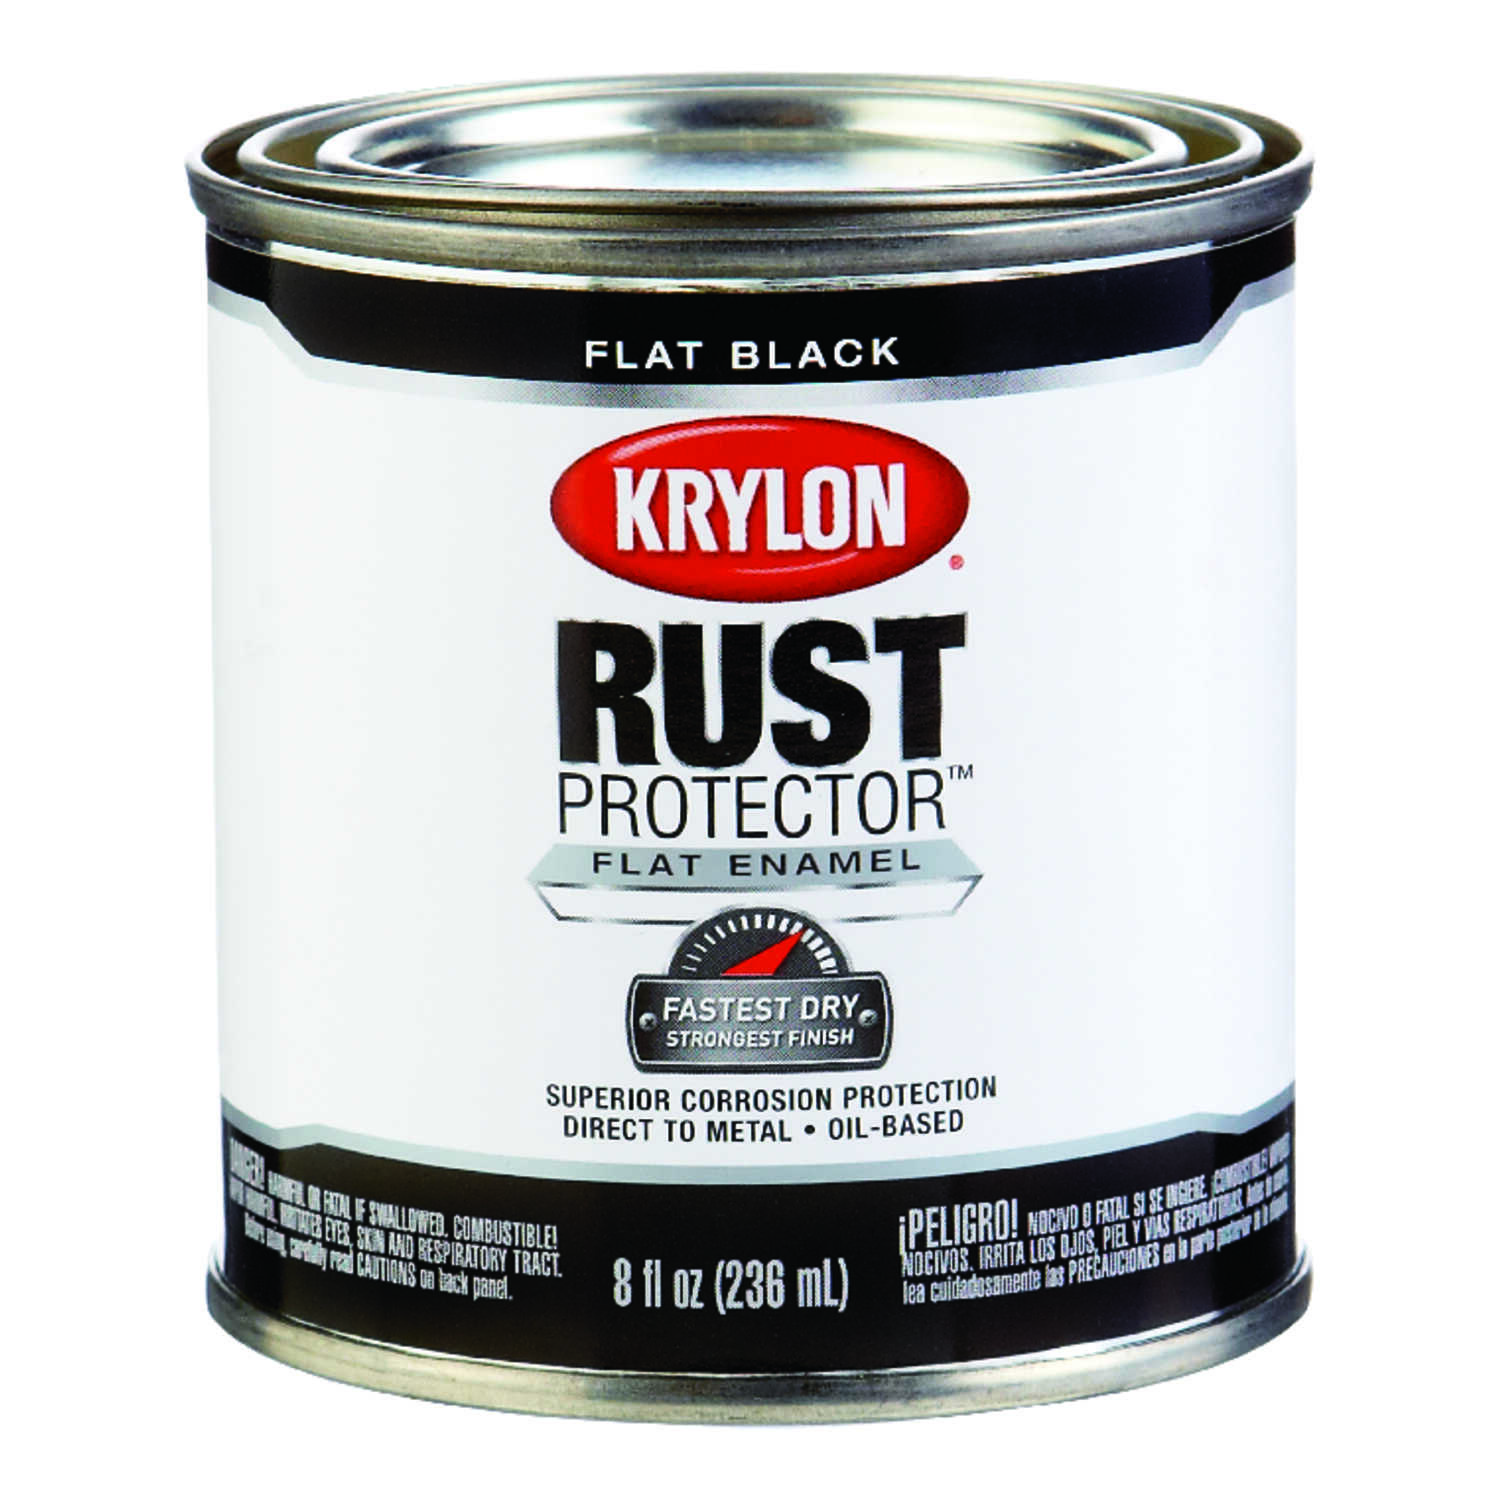 Krylon  Rust Protector  Indoor and Outdoor  Flat  Oil-Based  Enamel  Rust Protector Paint  8 oz. Bla